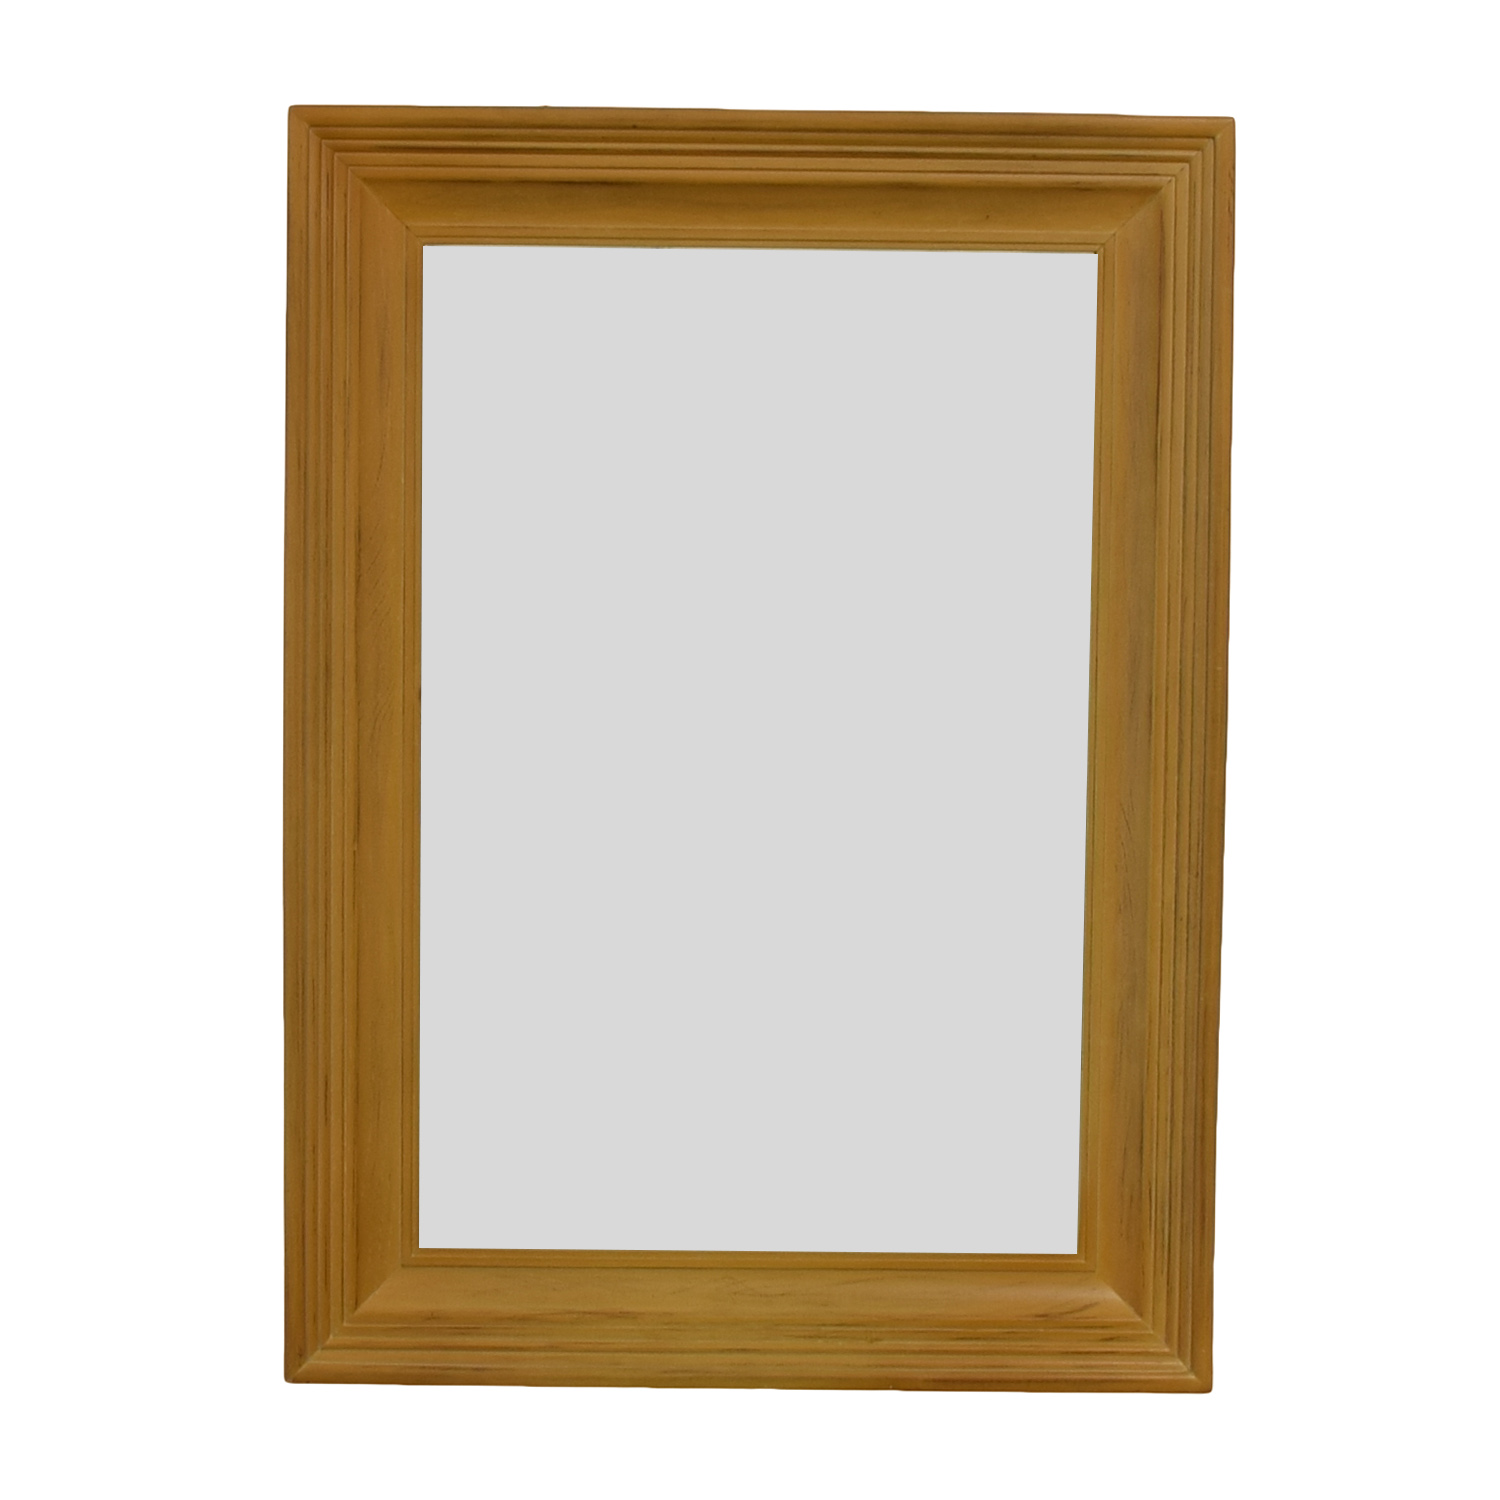 Wood Framed Wall Mirror coupon